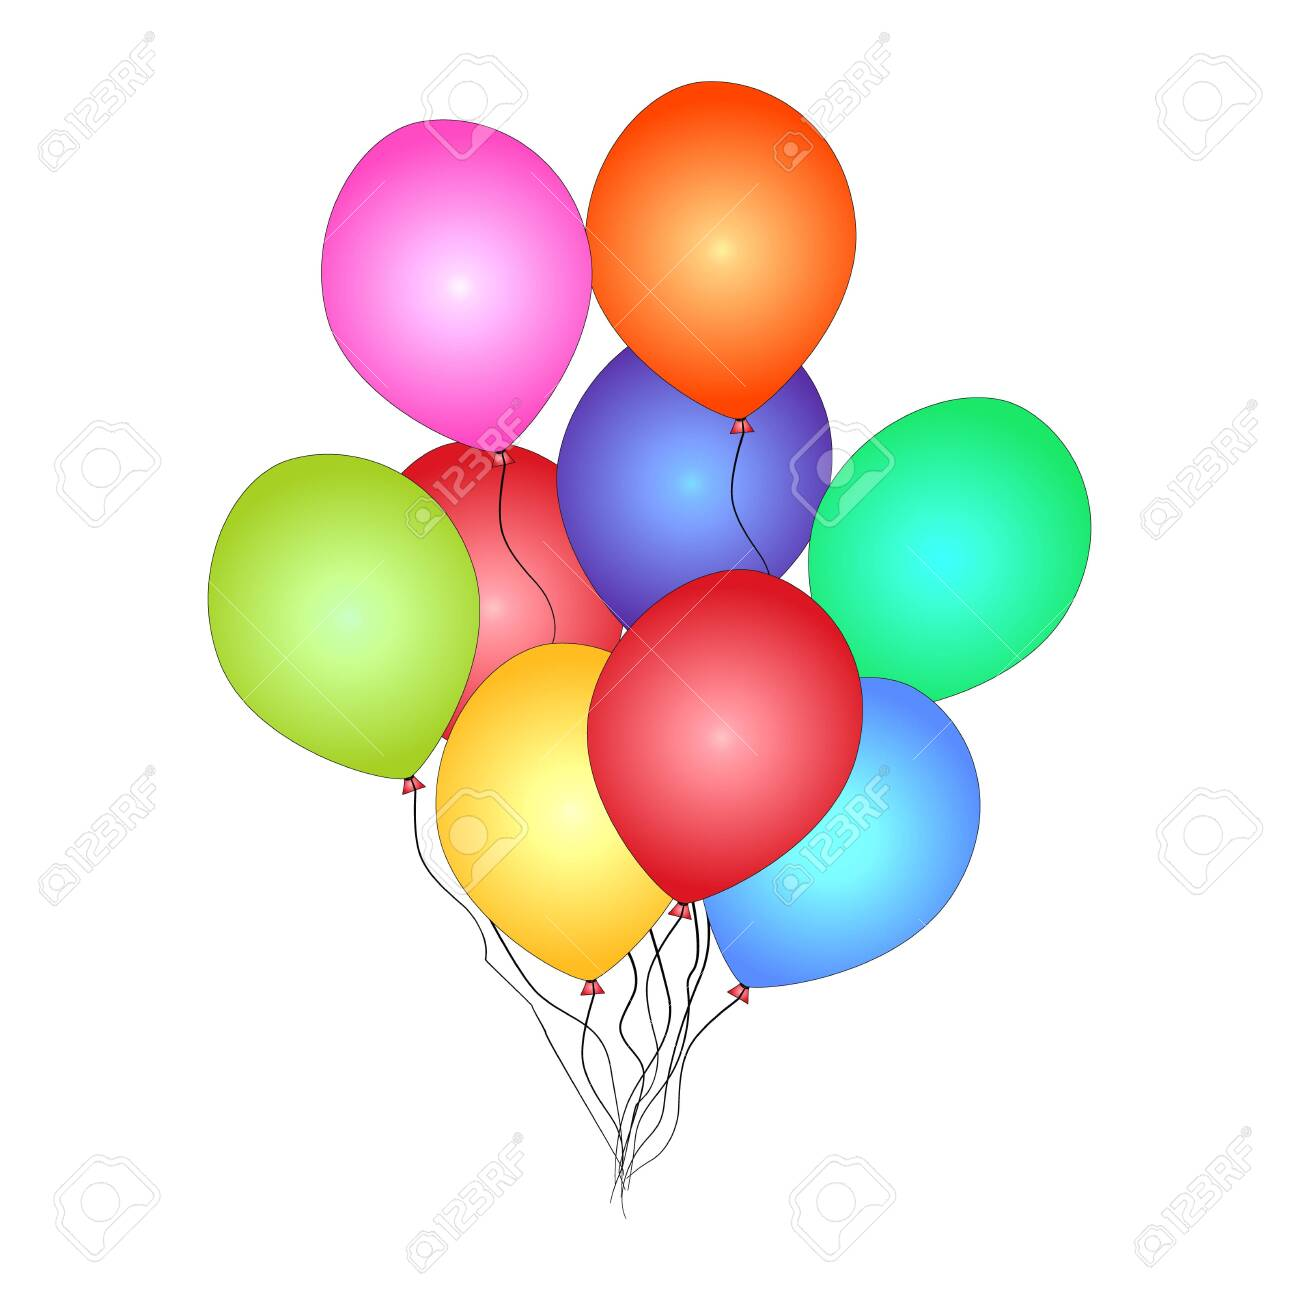 Bunch of helium balloon isolated on white background. Festive colored balloons for happy birthday, anniversary holiday invitation. Party decoration, Valentines day and celebrations event design. Stock vector illustration - 142052335